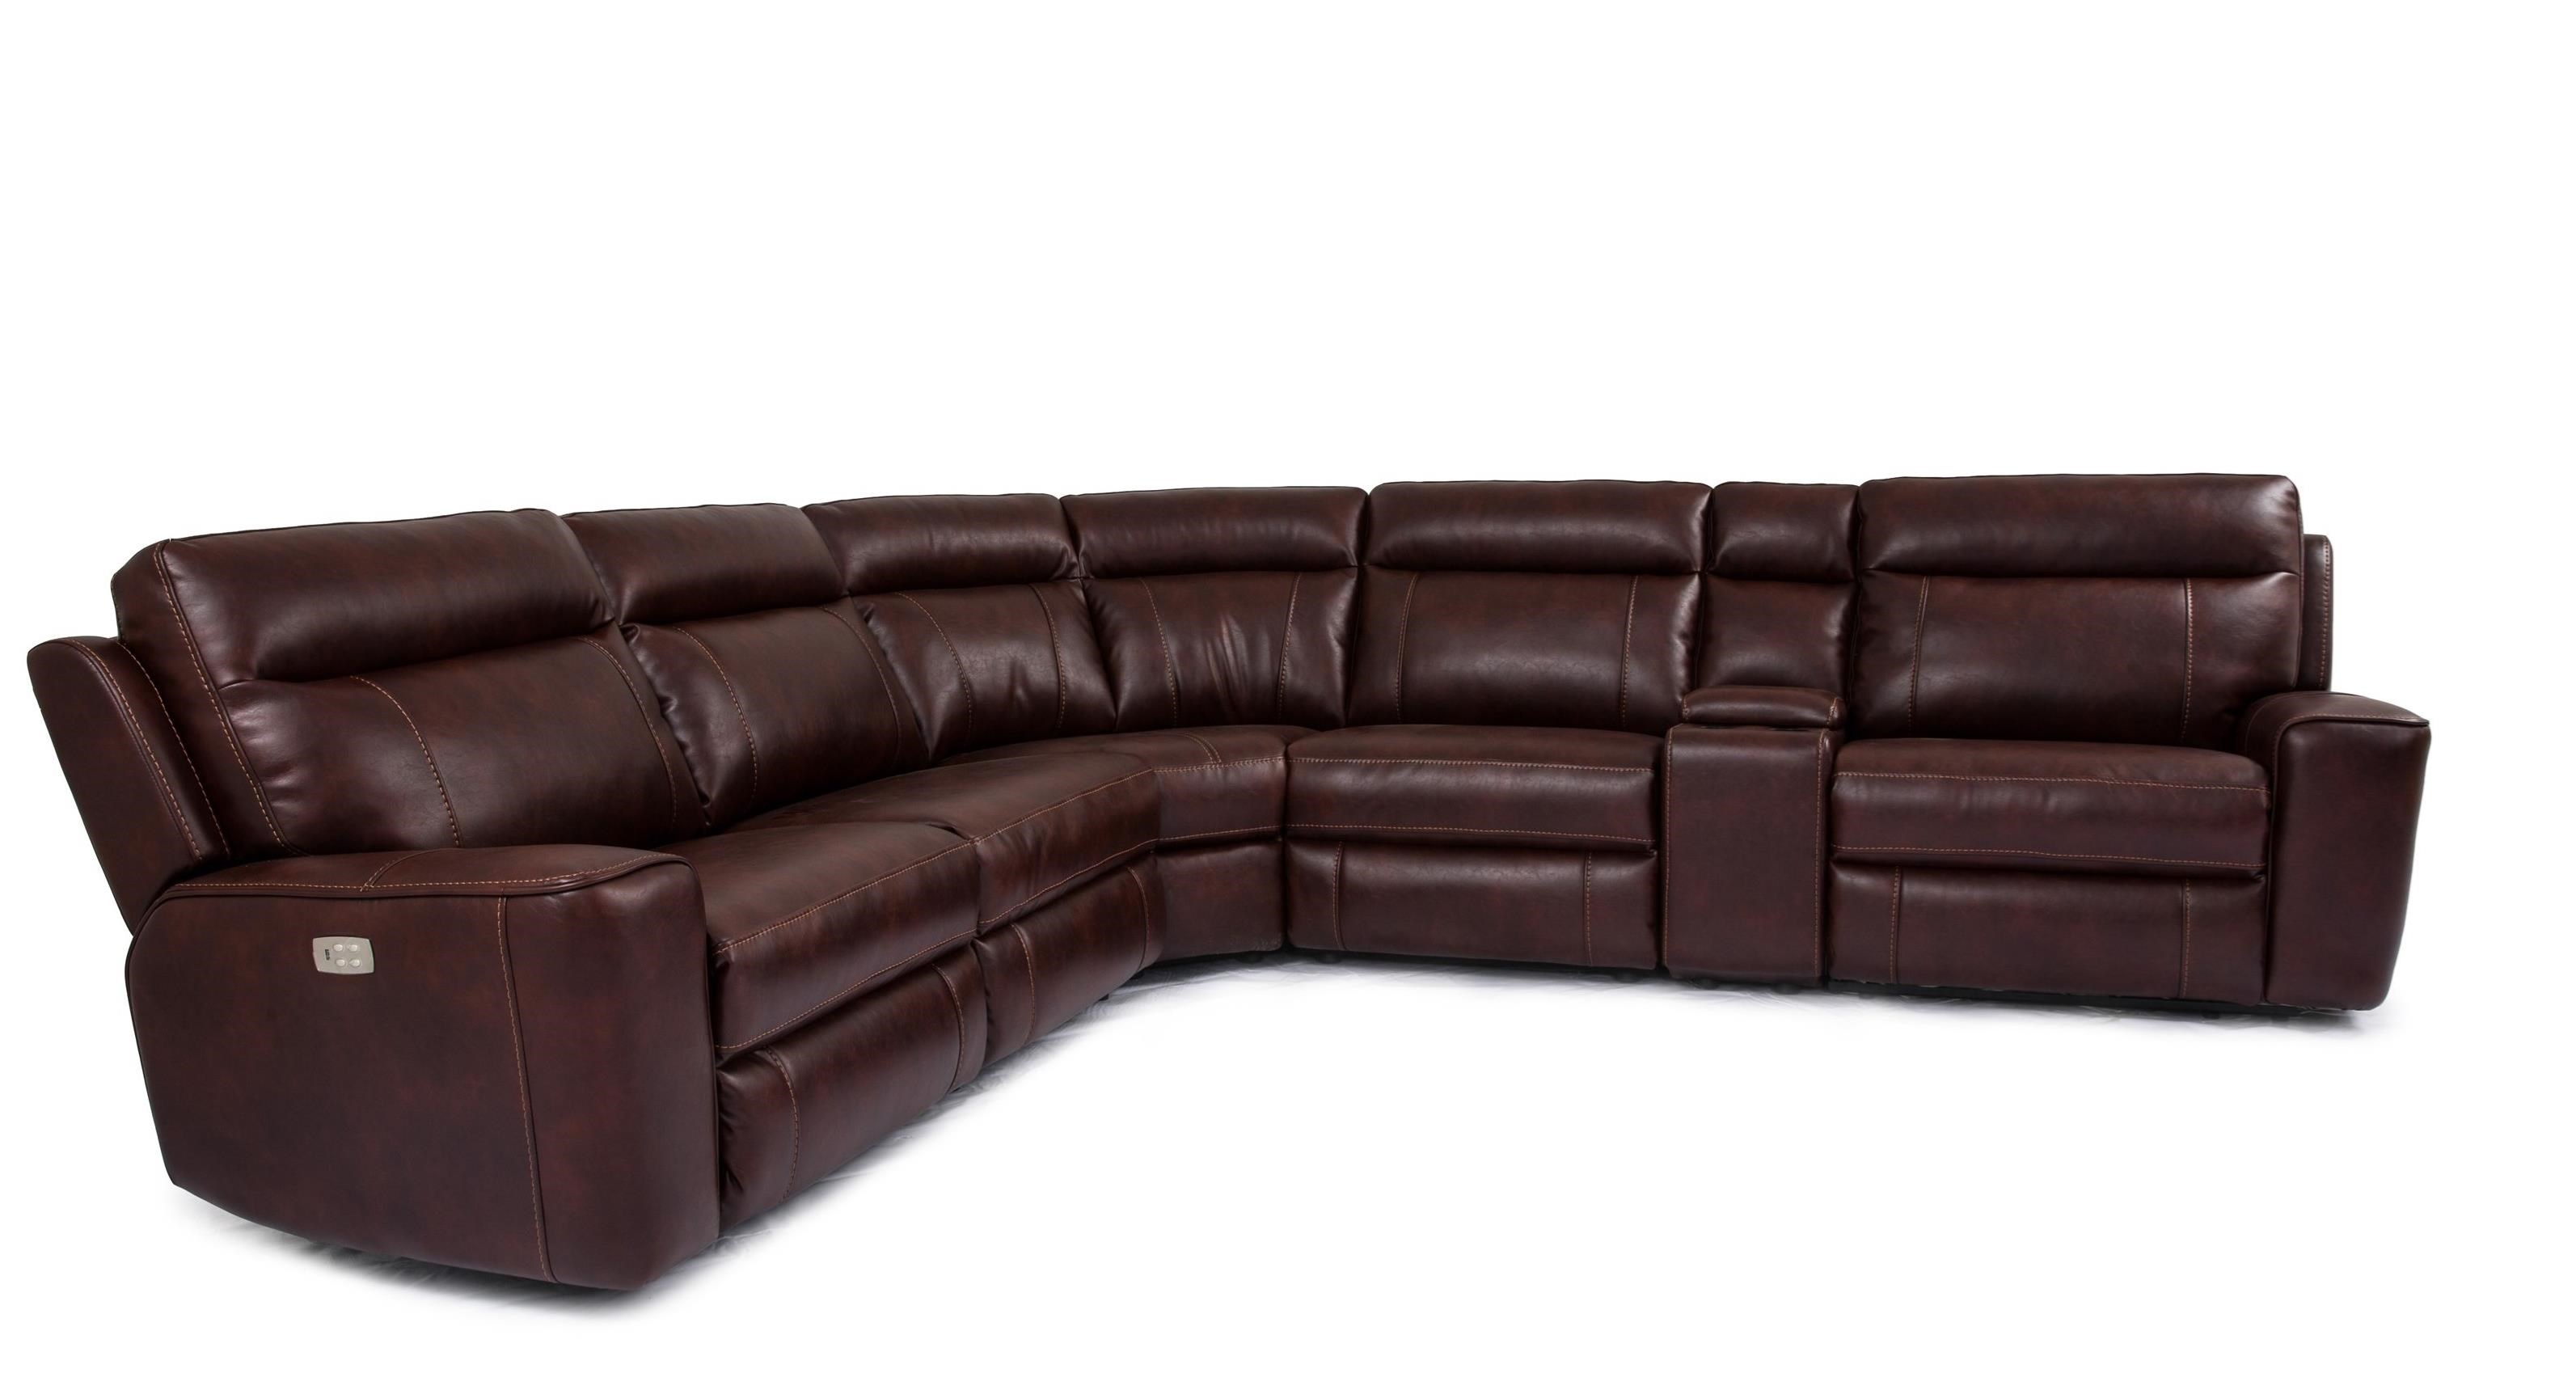 5192 6-Piece Power Reclining Sectional by Cheers at Lagniappe Home Store